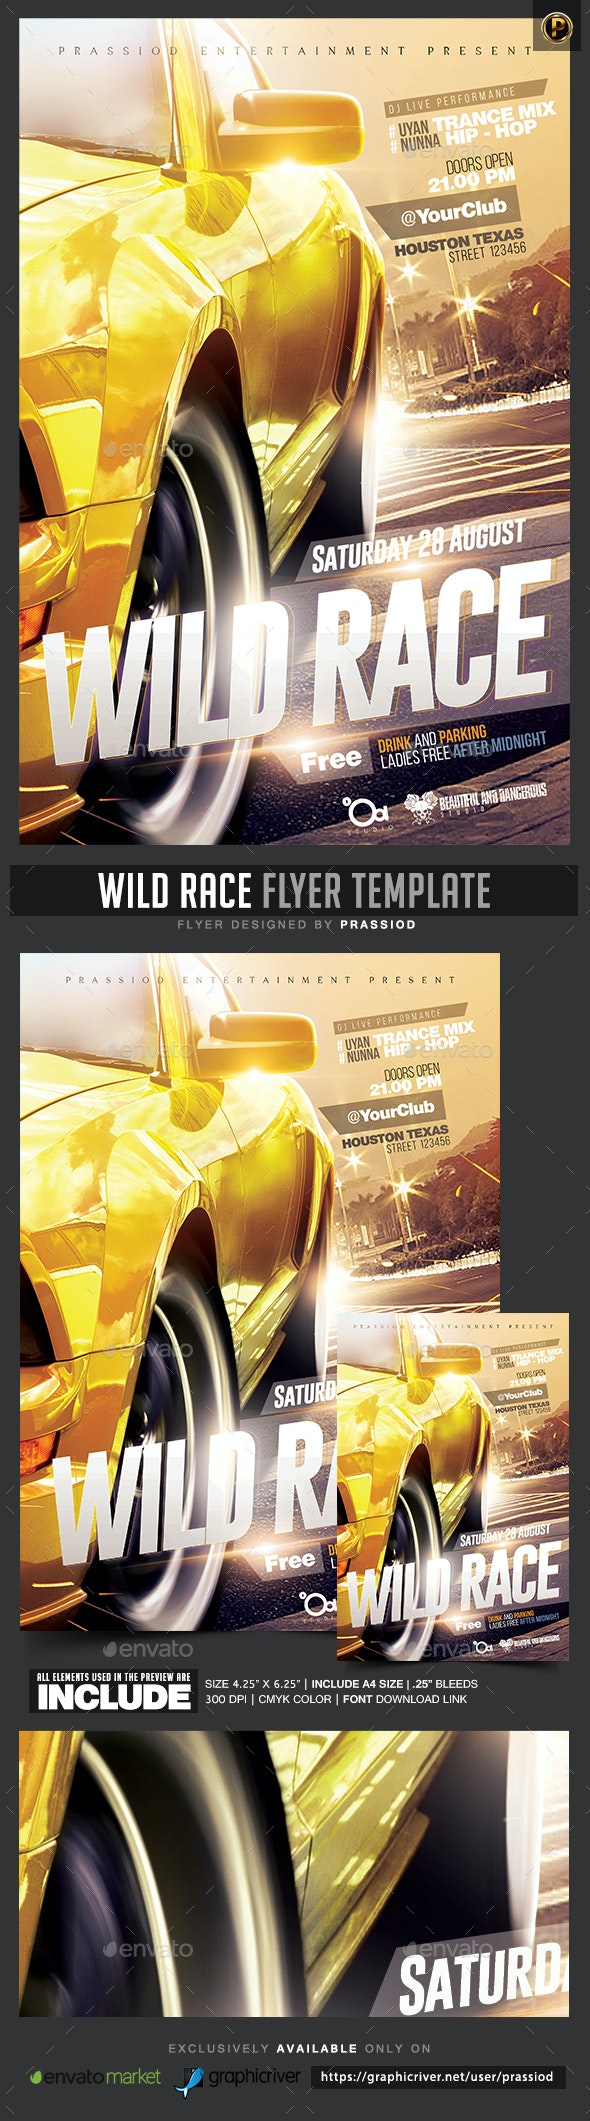 Wild Race Flyer Template - Events Flyers